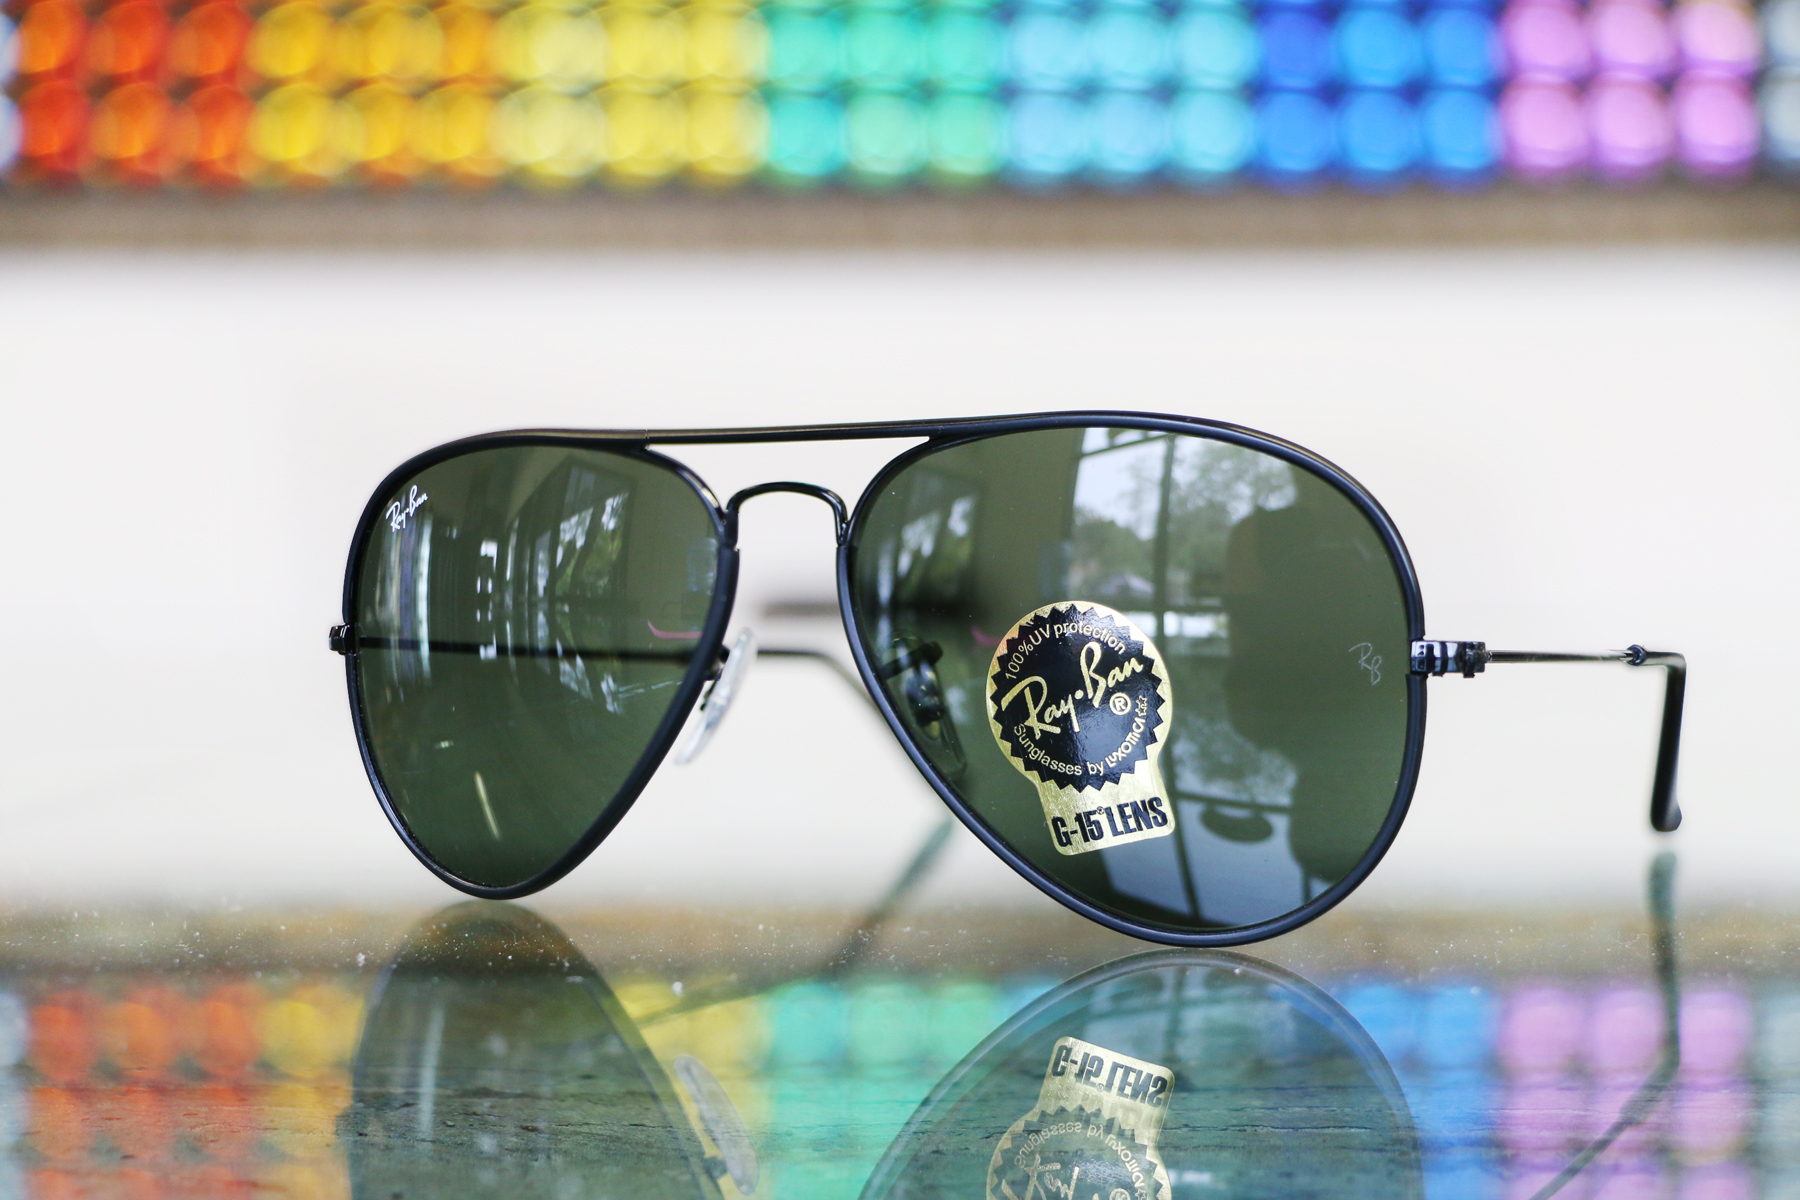 Ray Ban Aviators, RB 3025, Prescription Ray Ban Sunglasses